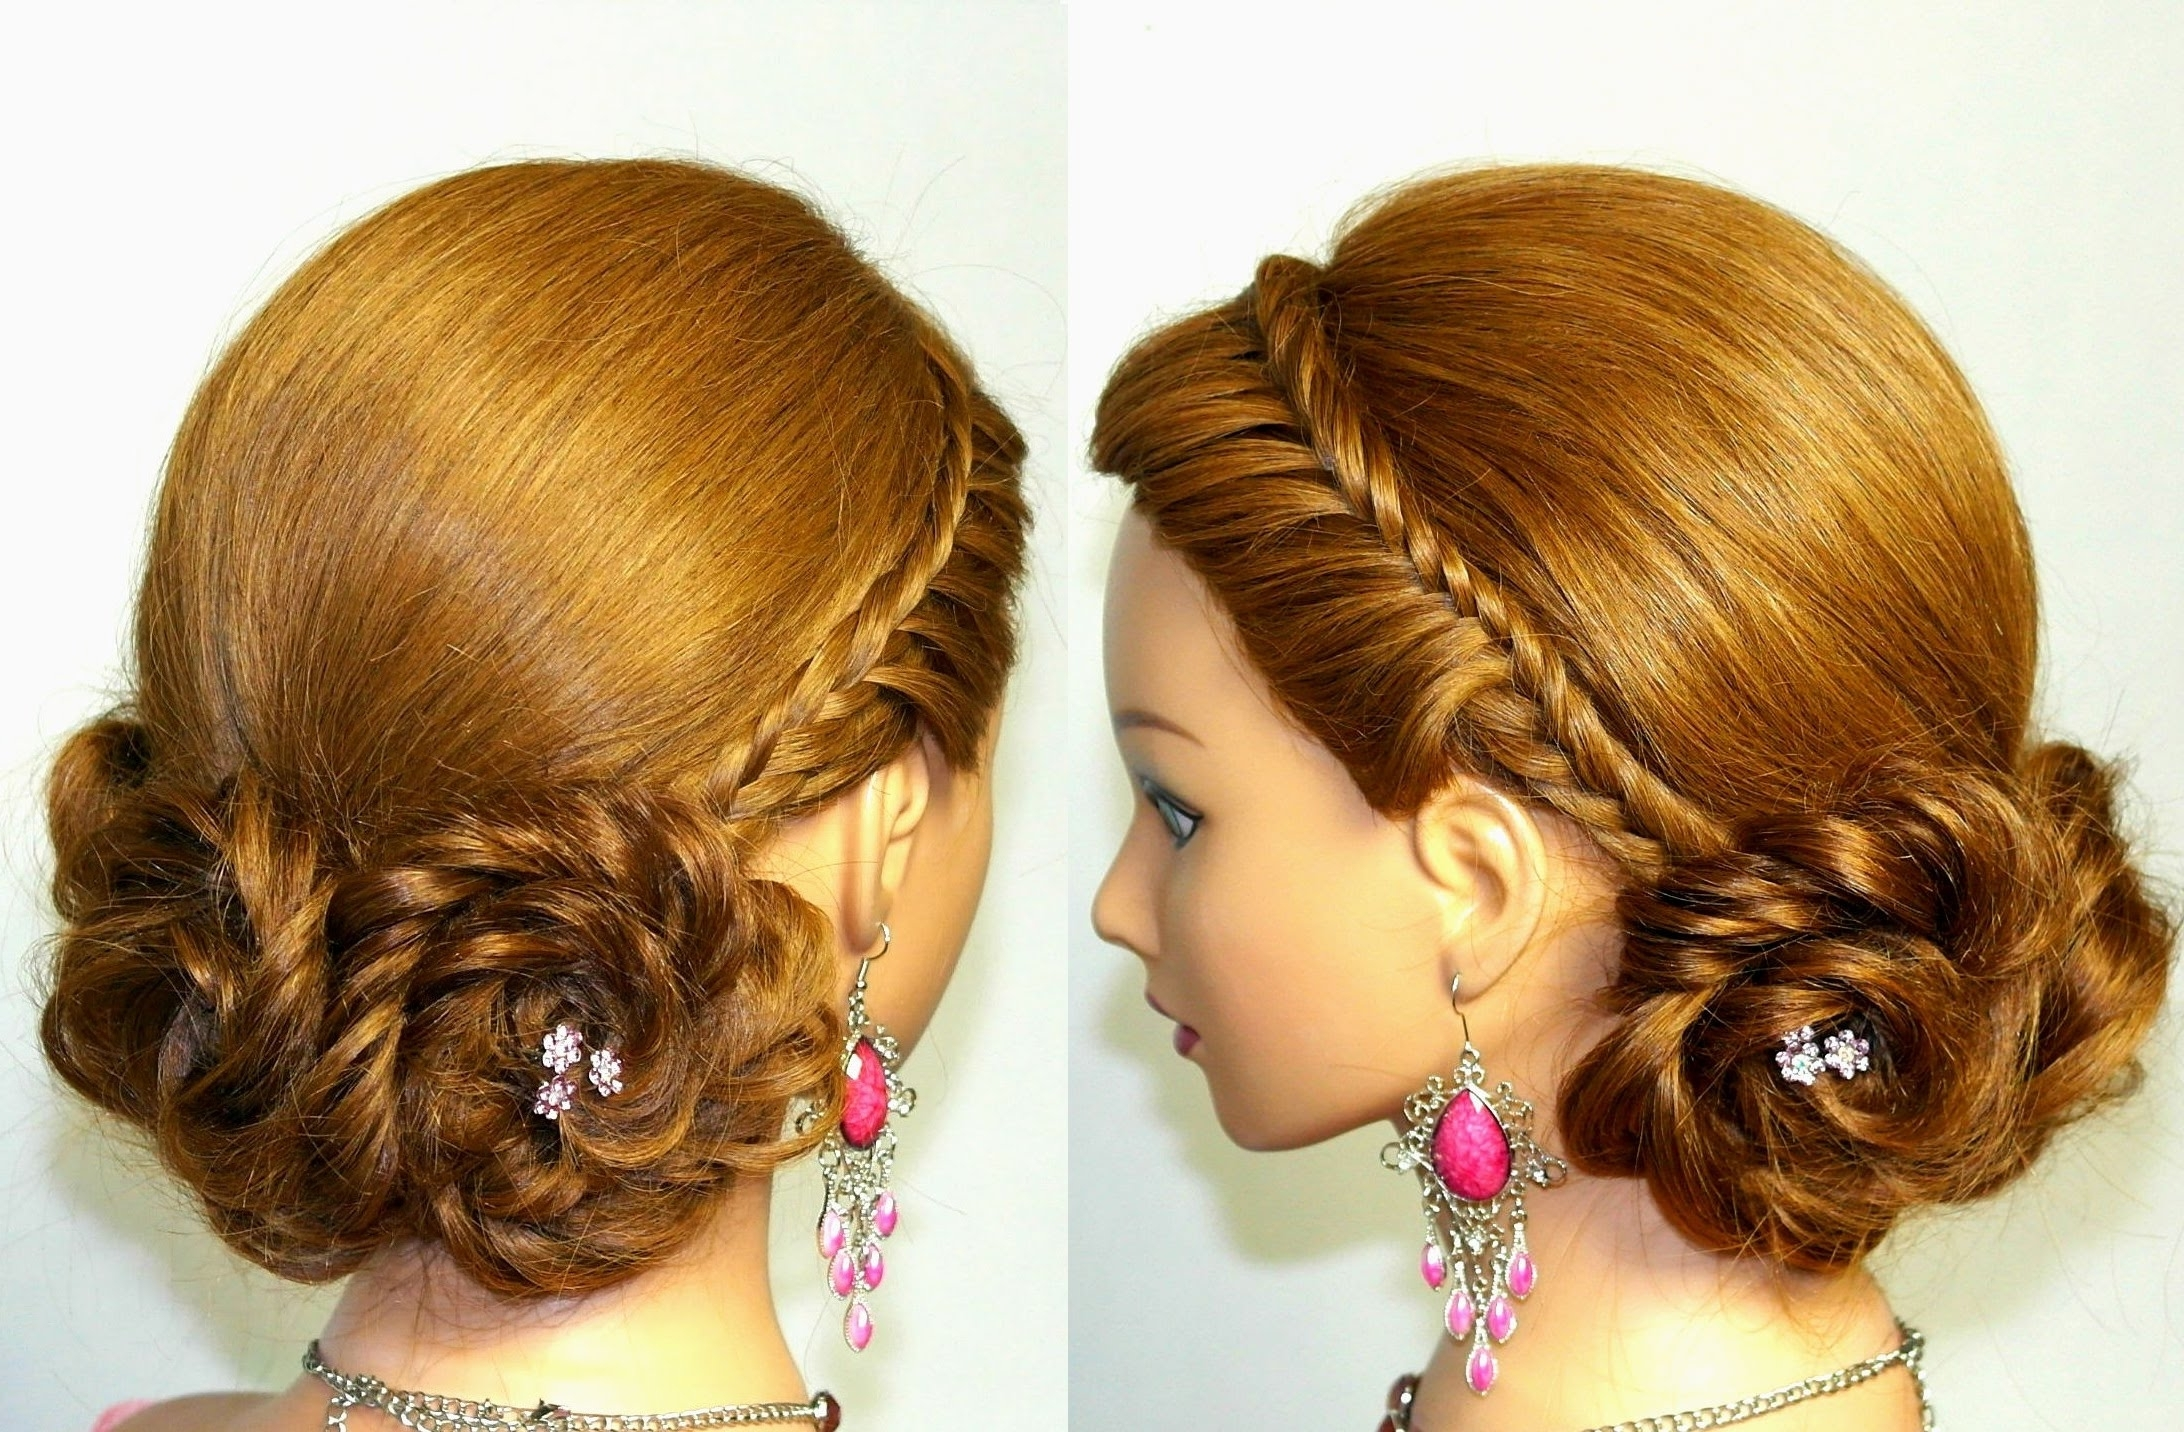 Cute Hairstyle For Long Hair Braided Updo Youtube Brilliant Ideas Of Within Braid Updo Hairstyles For Long Hair (View 8 of 15)